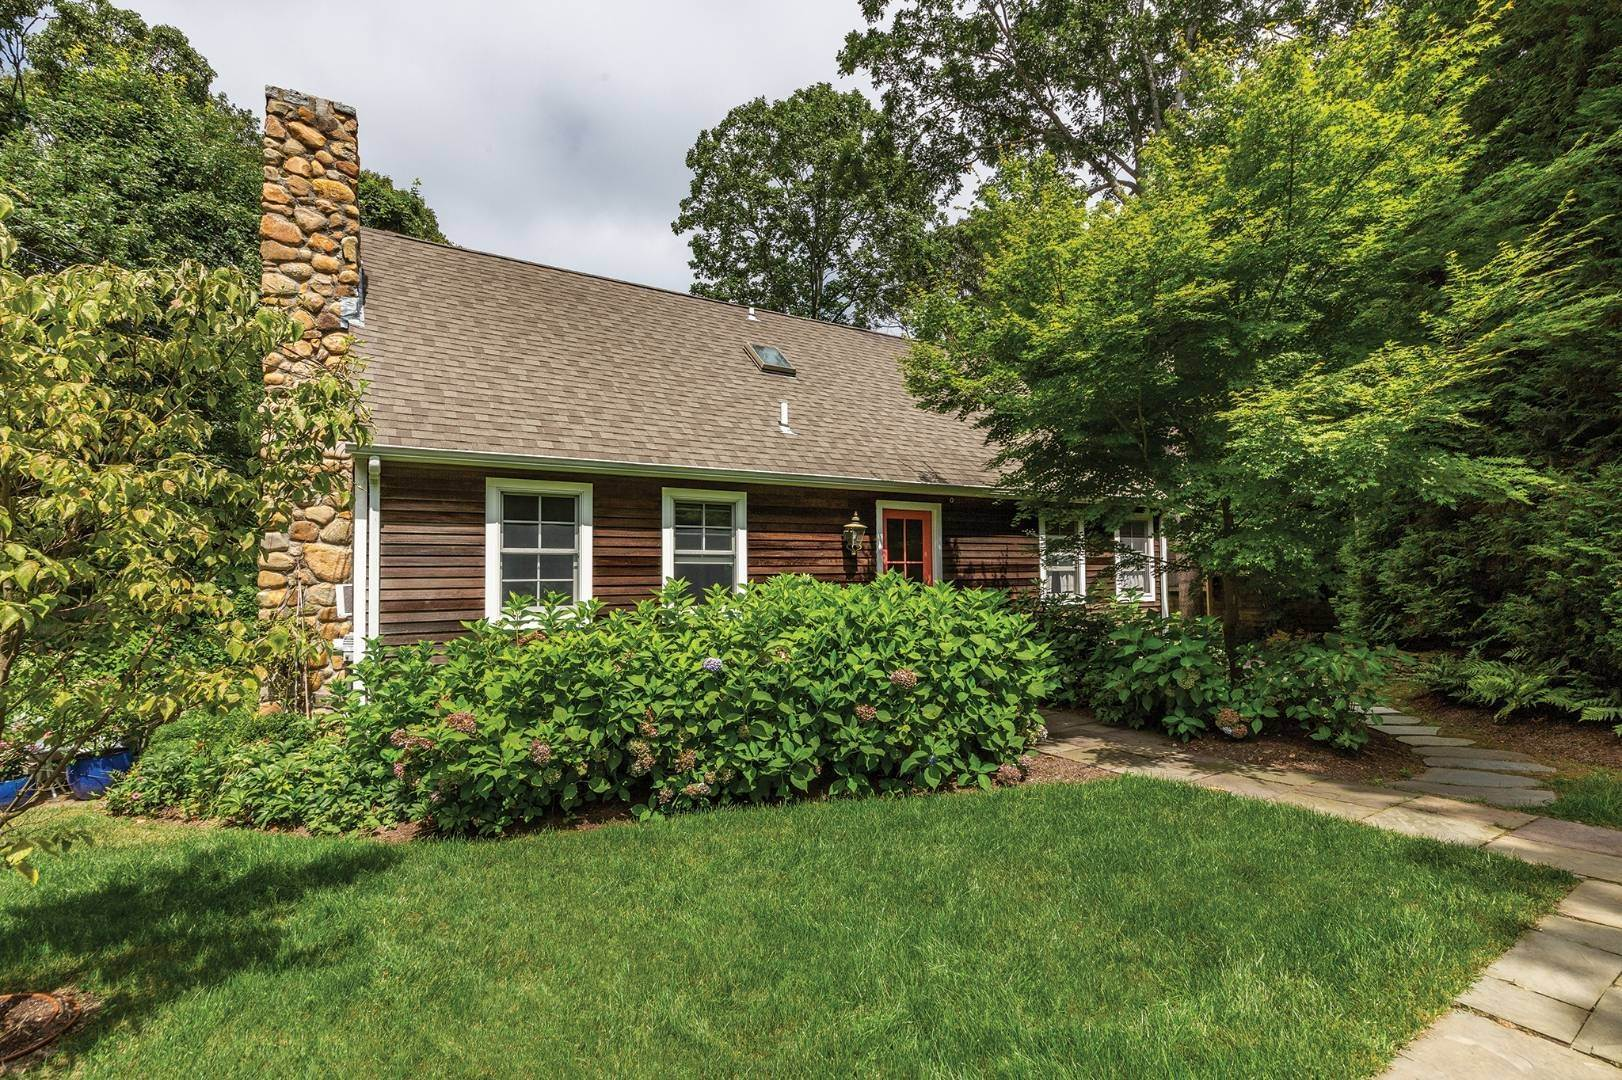 Single Family Home for Sale at Color Me Home 59 Hog Creek Road, East Hampton, NY 11937